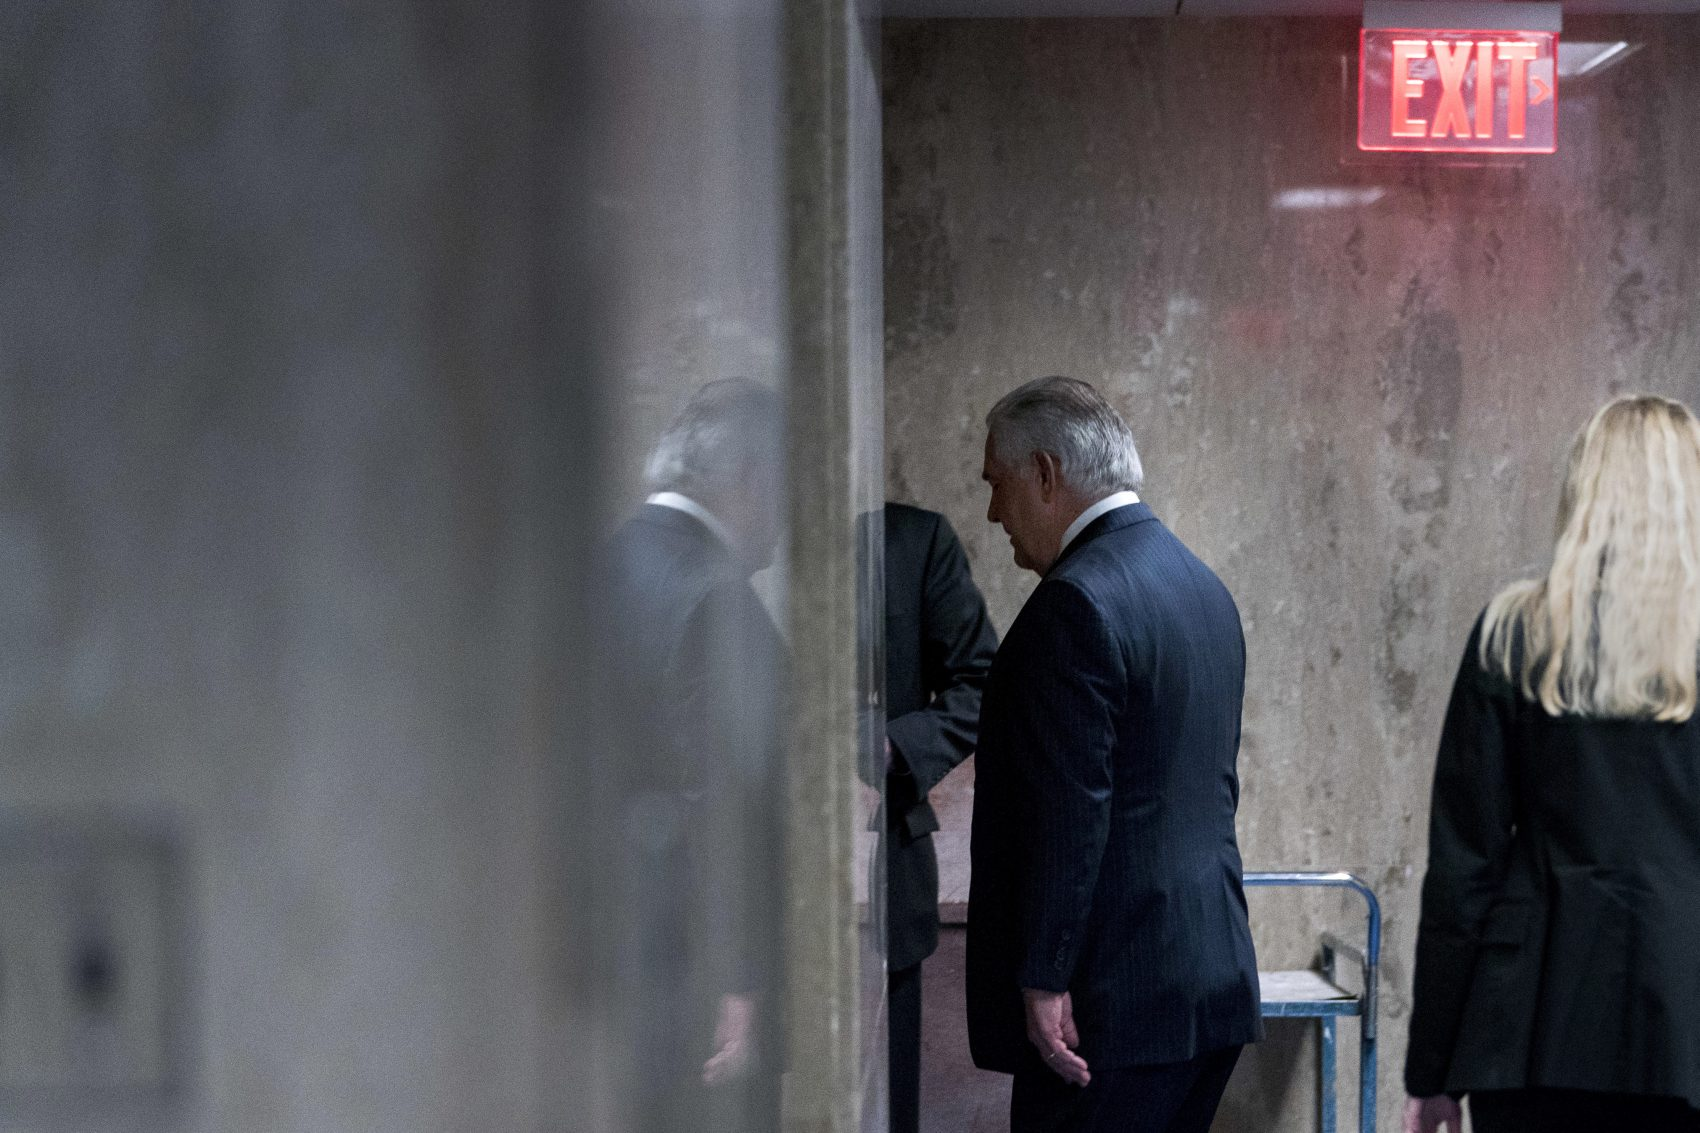 Secretary of State Rex Tillerson walks down a hallway after speaking at a news conference at the State Department in Washington, Tuesday, March 13, 2018. (Andrew Harnik/AP)